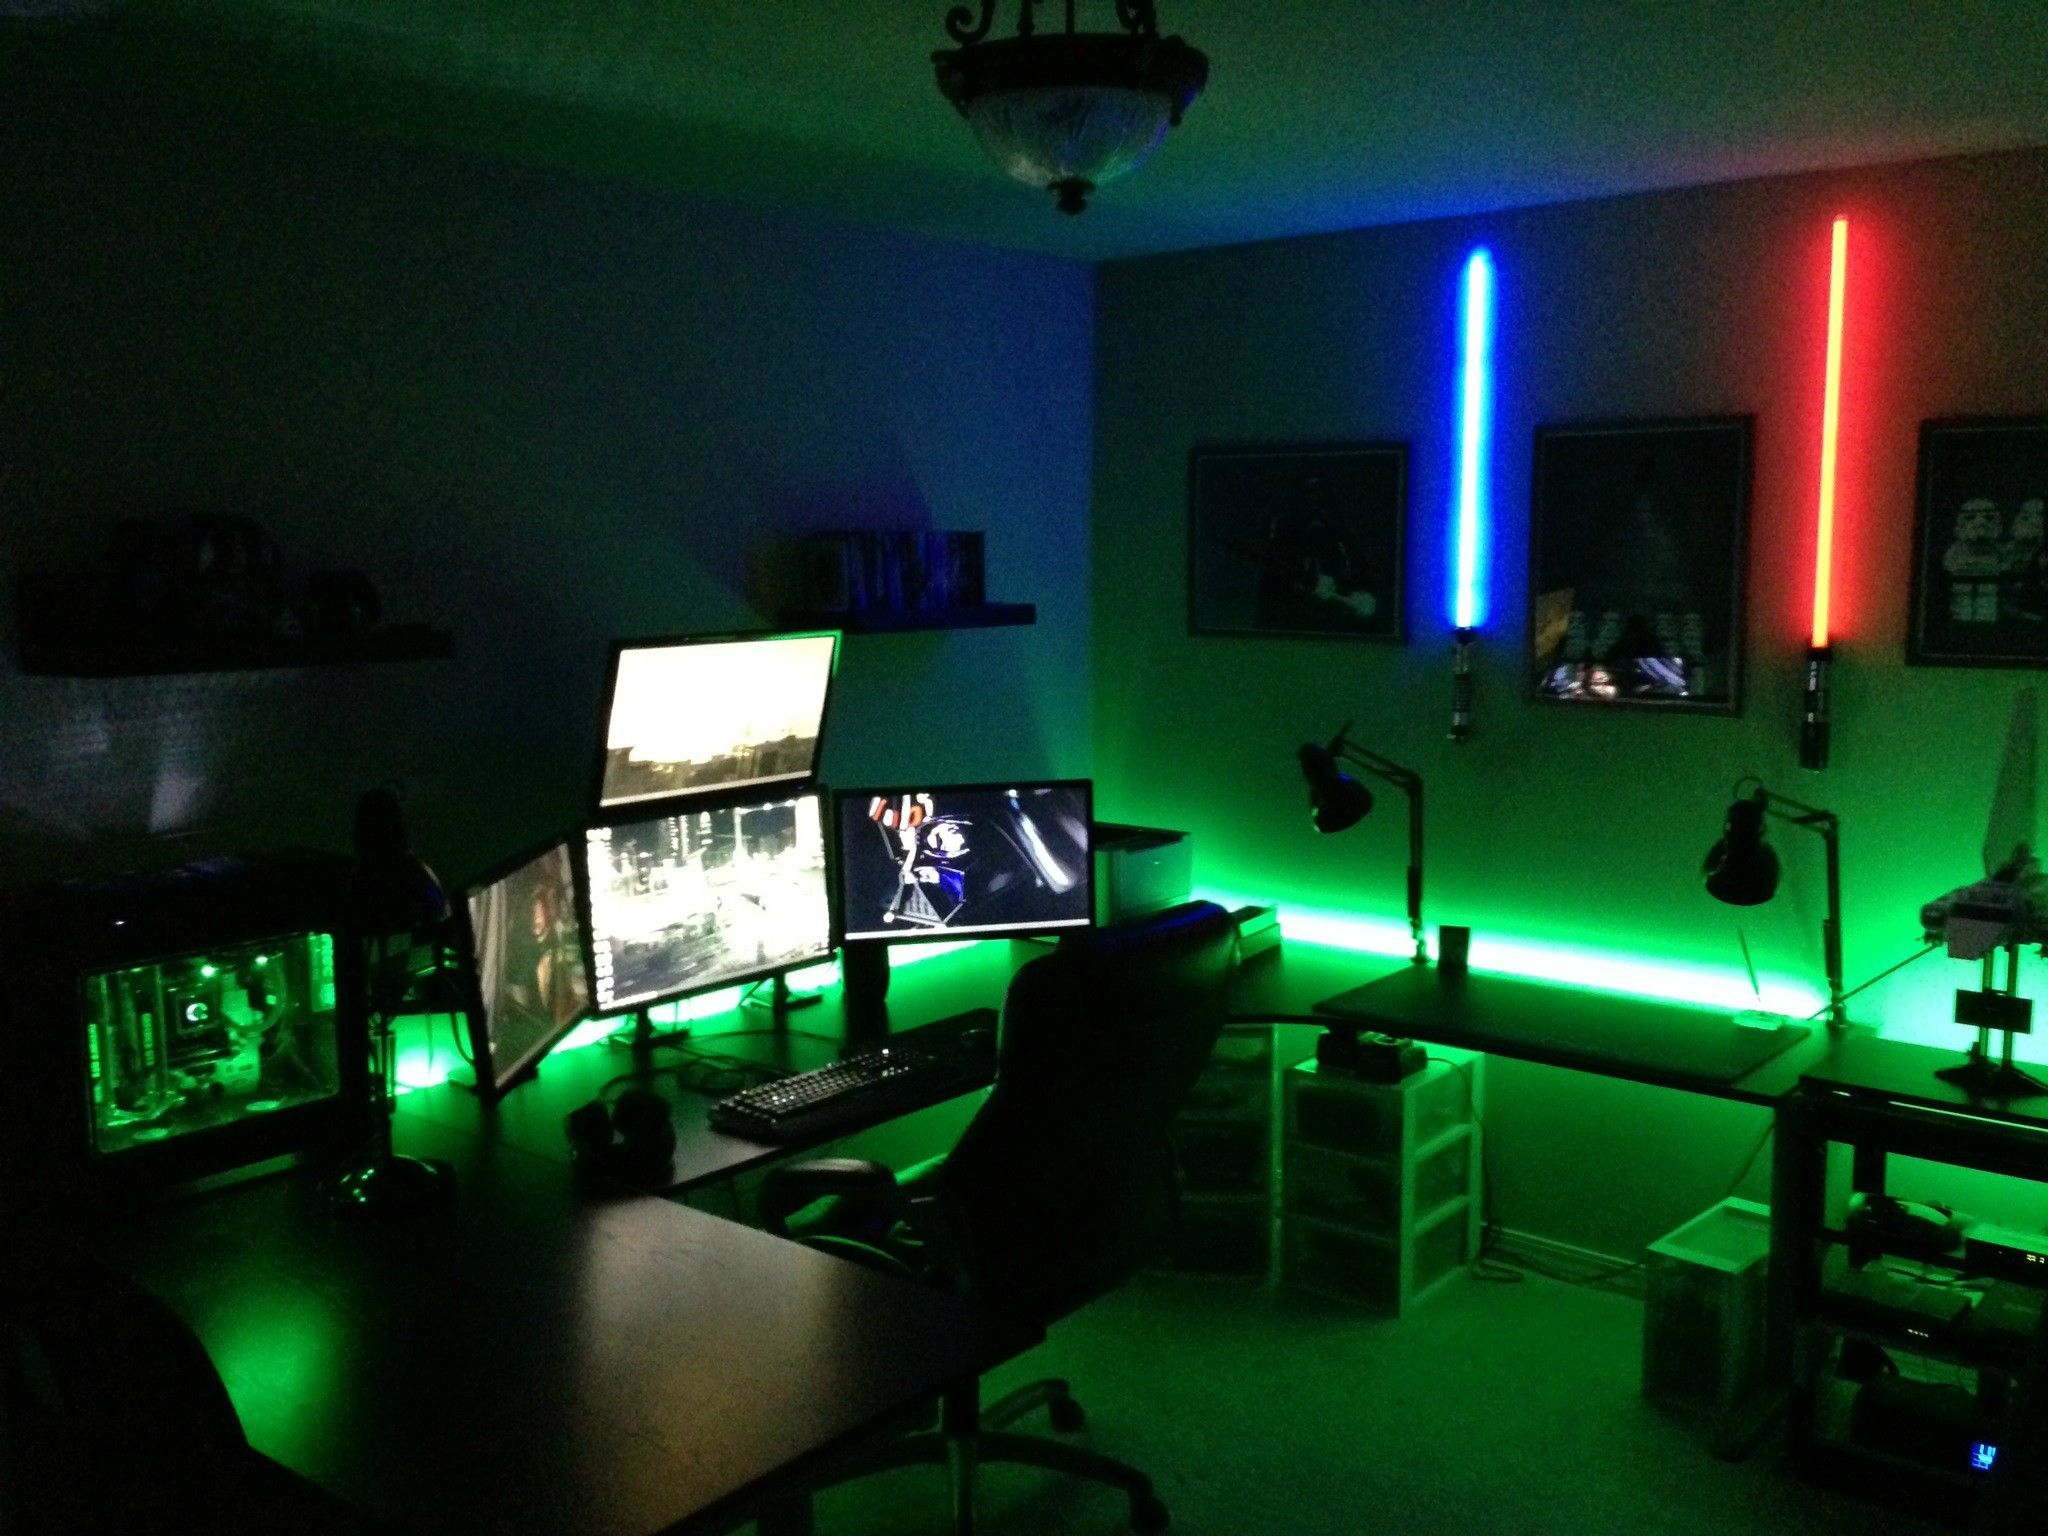 Enchanting Computer Room Design Ideas With Colorful Lighting